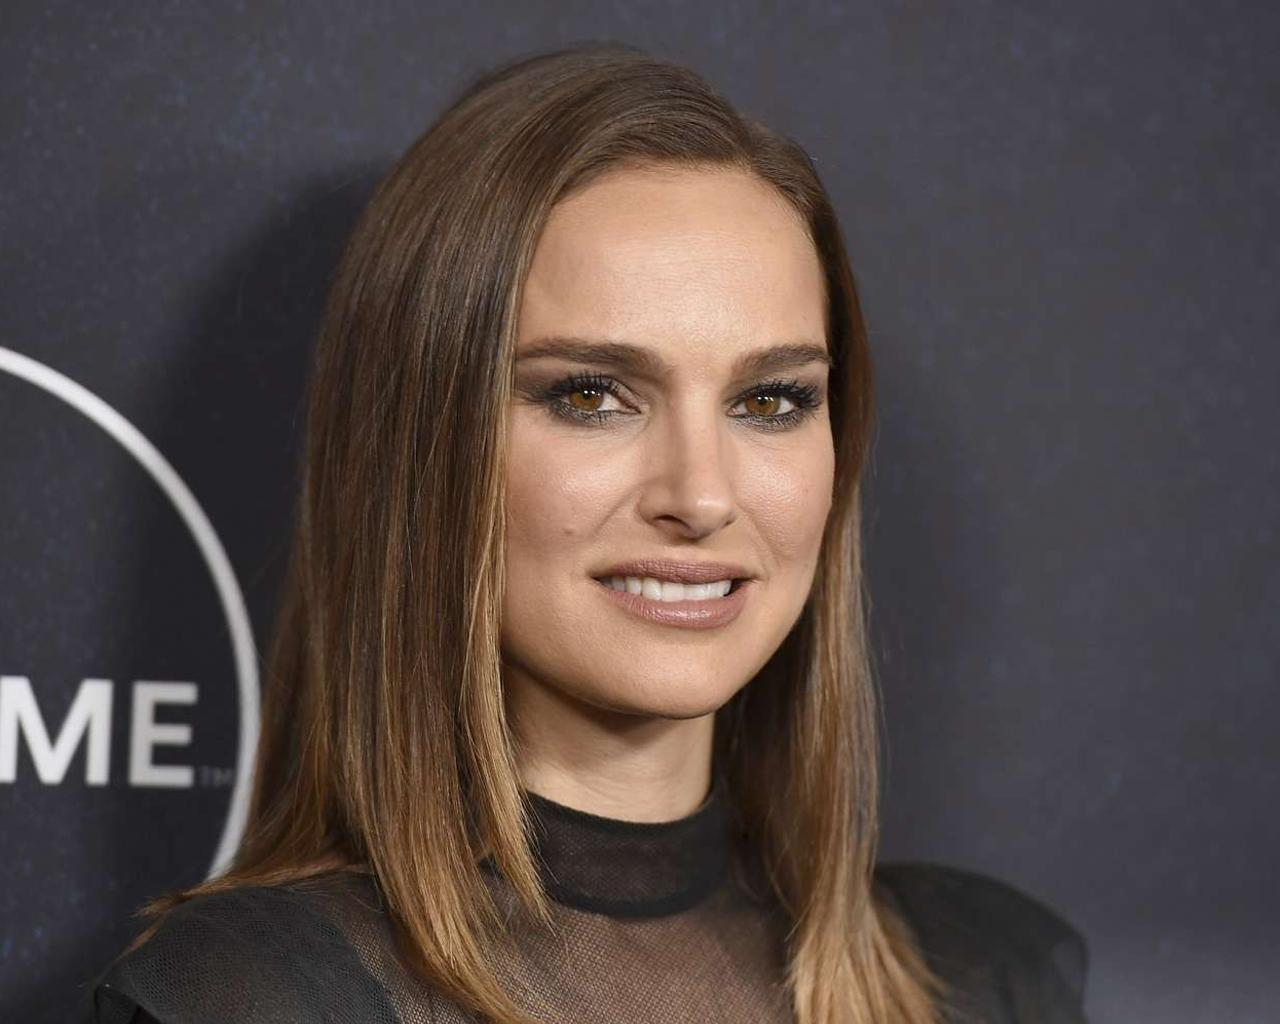 Actress Natalie Portman States She Never Had A Relationship With Moby—It Was Created To Sell Books